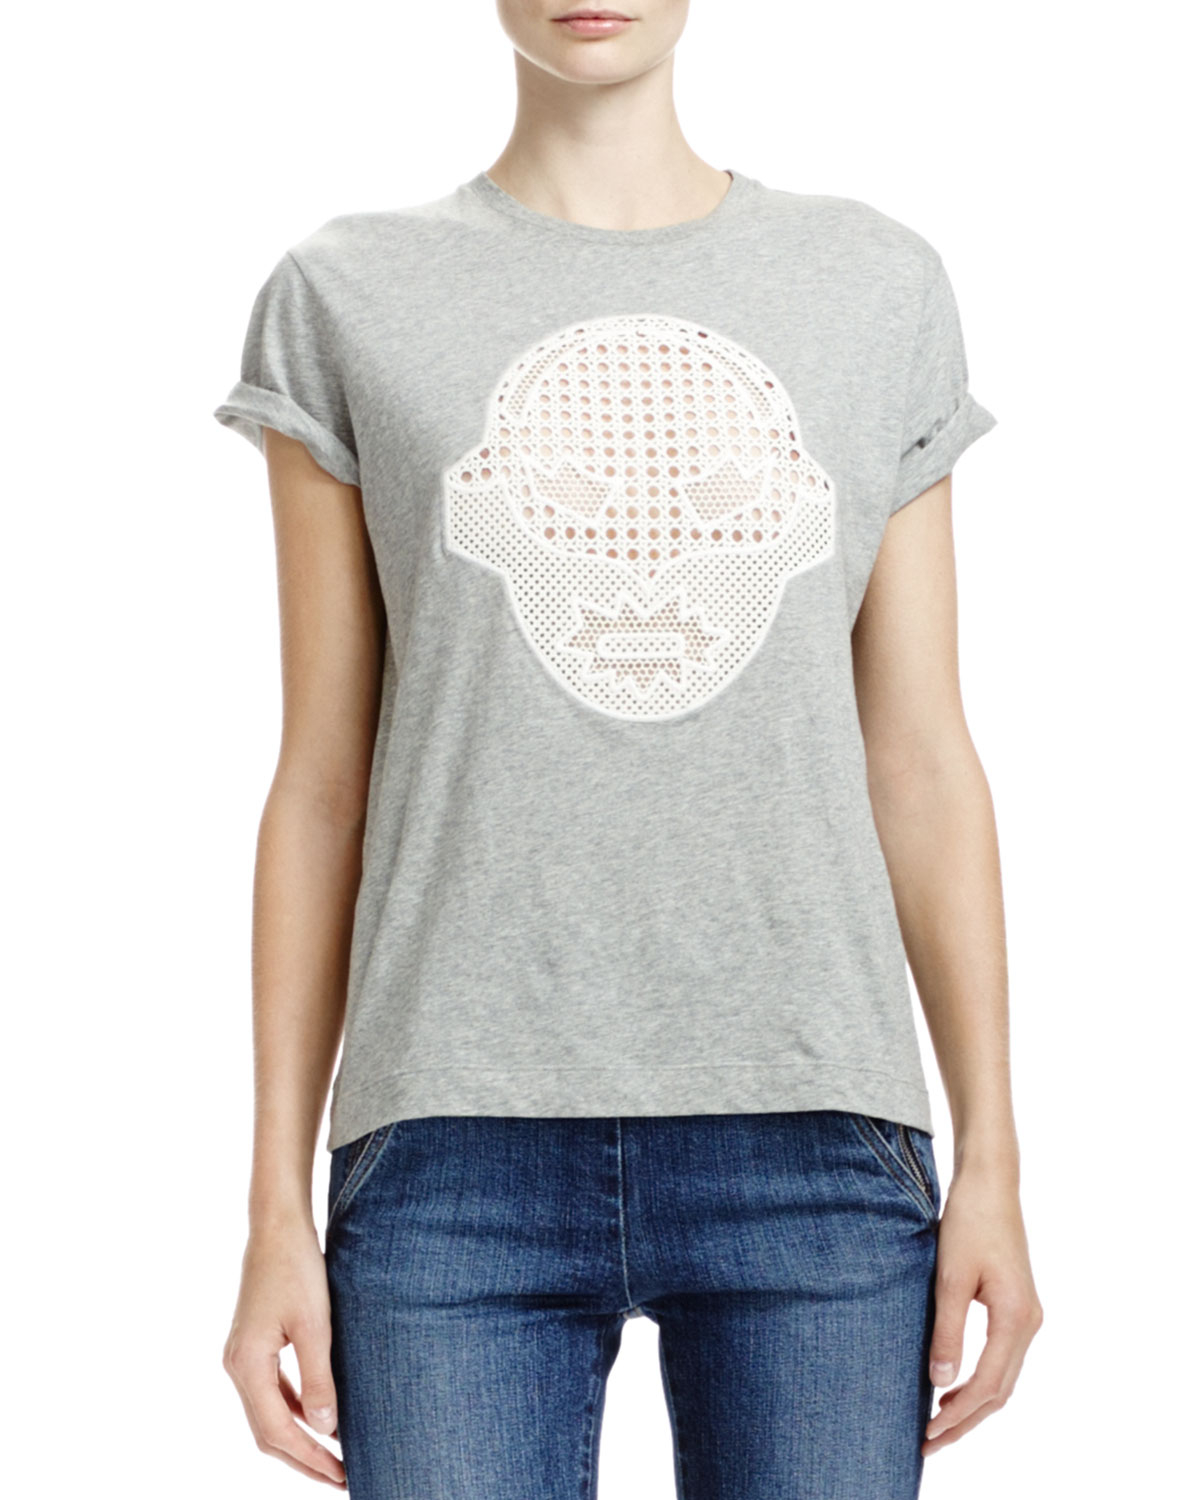 Stella Mccartney T Shirt With Superhero Lace Appliqu In